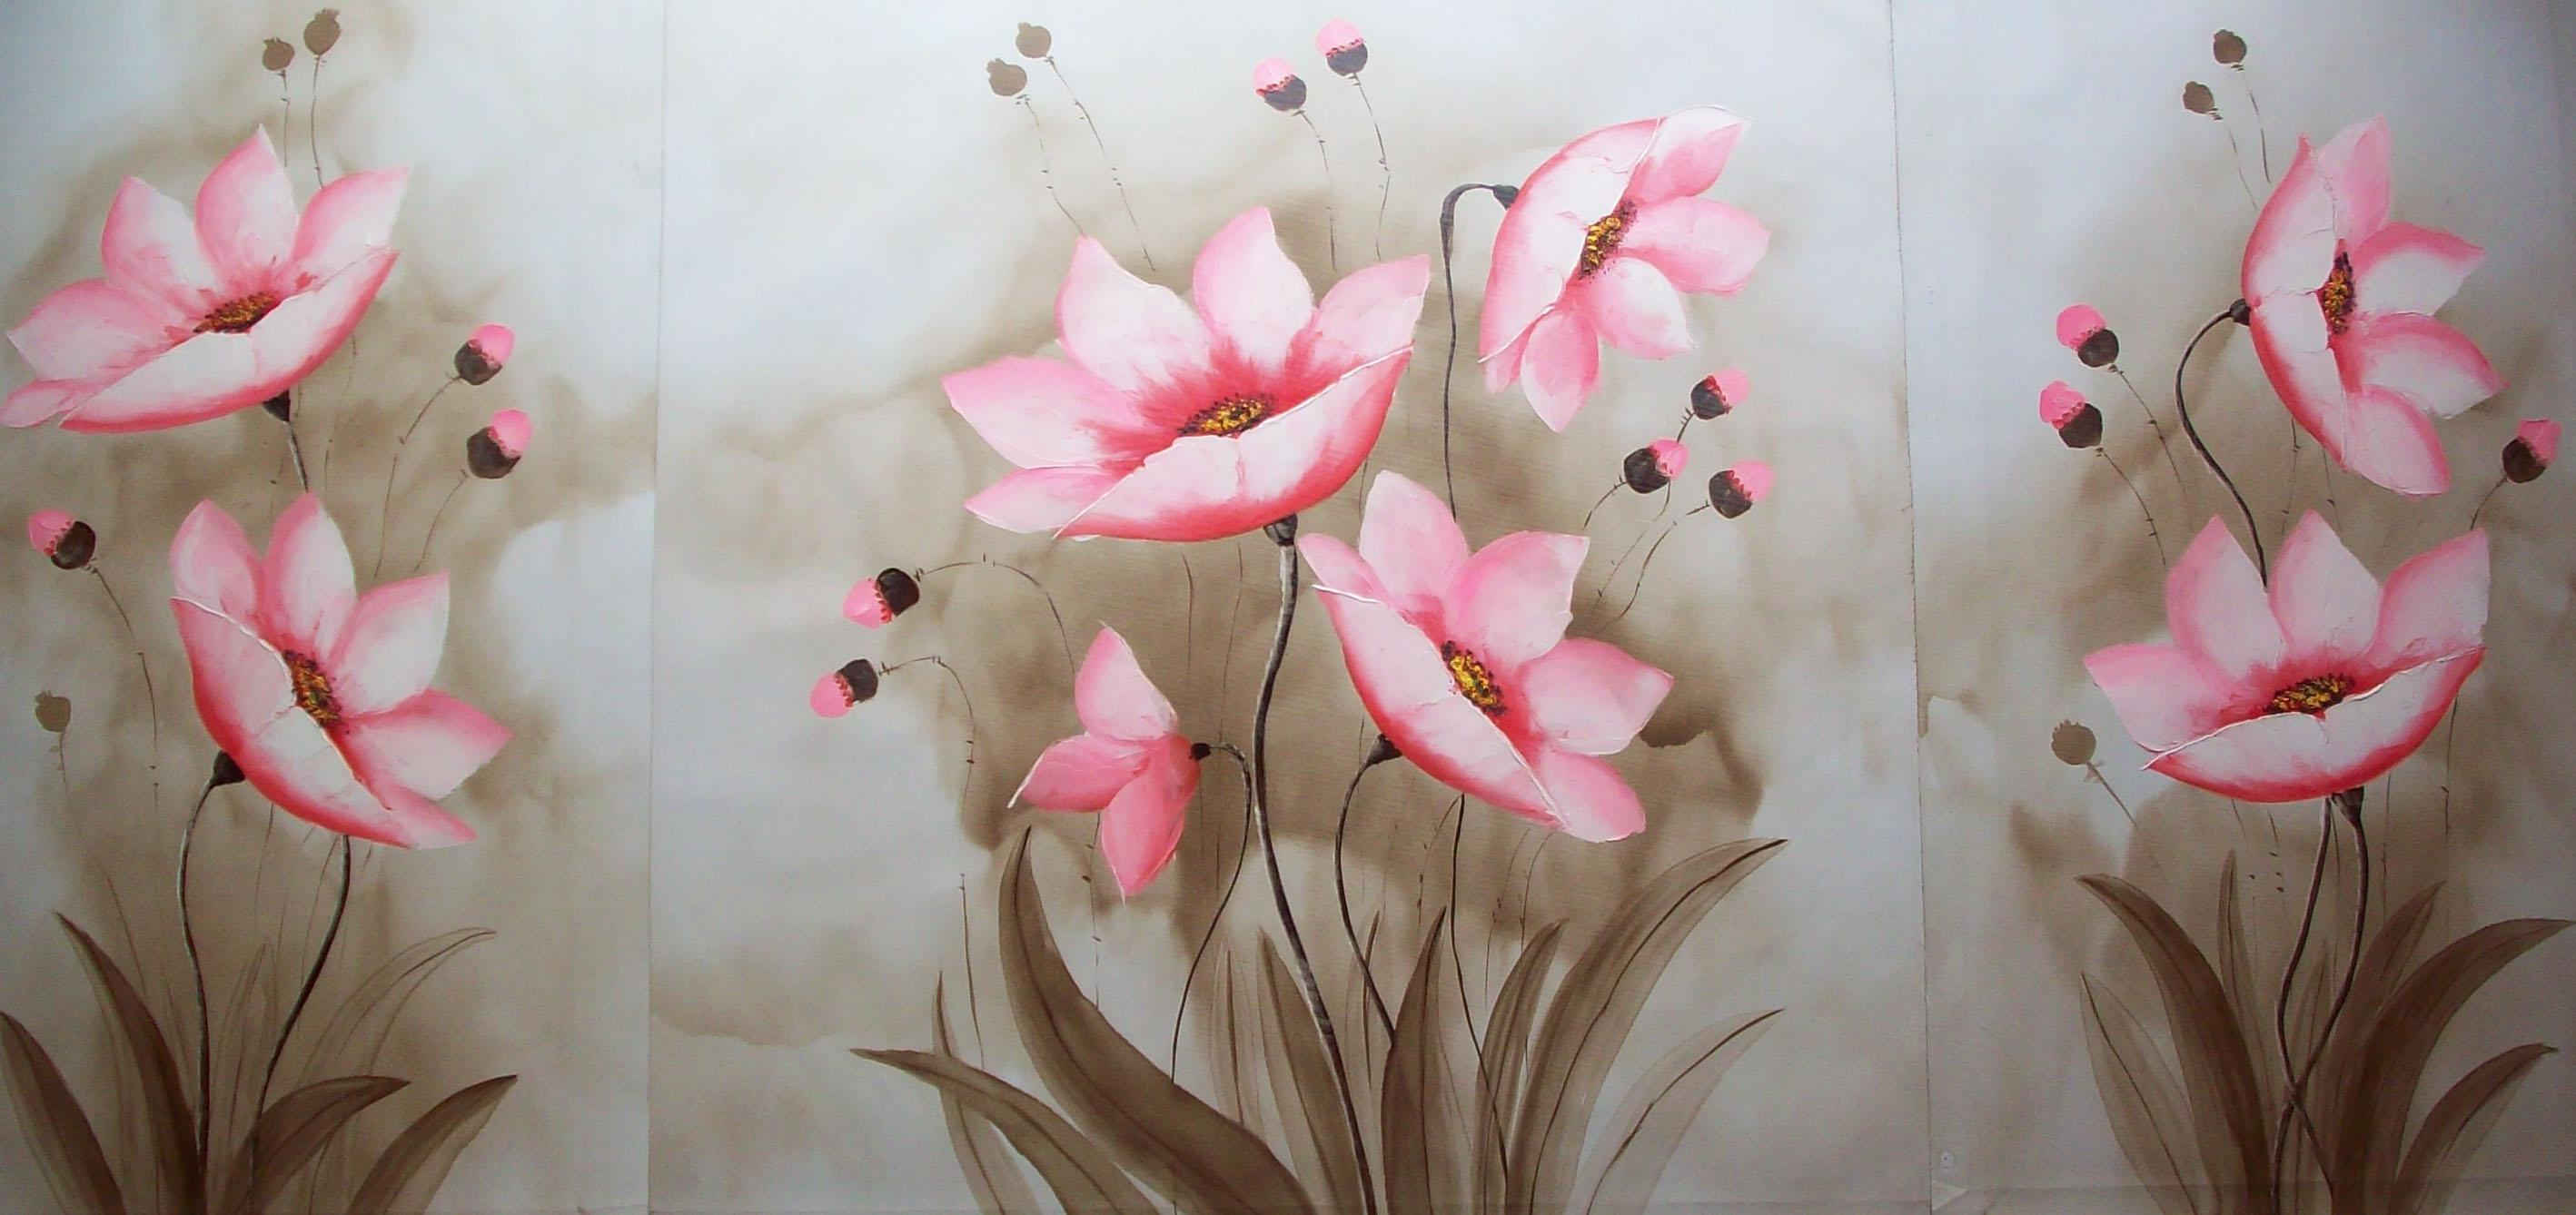 2017 Impression Group Oil Painting Nice Pink Flowers In